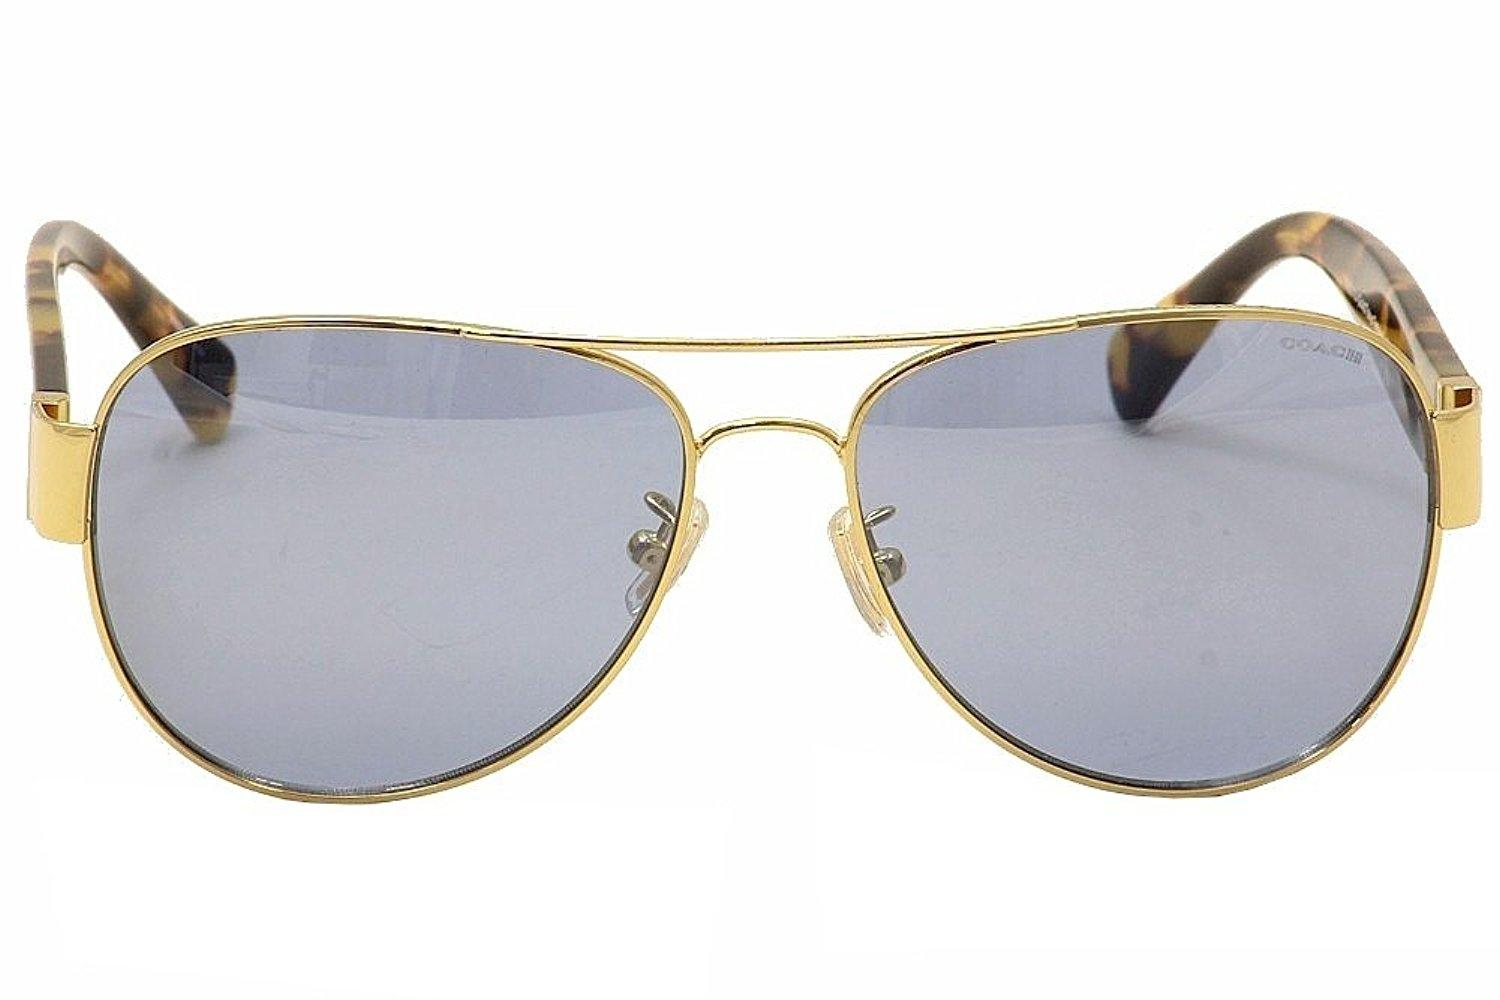 f9d107579a96 ... germany coach new coach hc 7059 92001u womens gold tortoise mirrored  lens sunglasses. 123456 a07c2